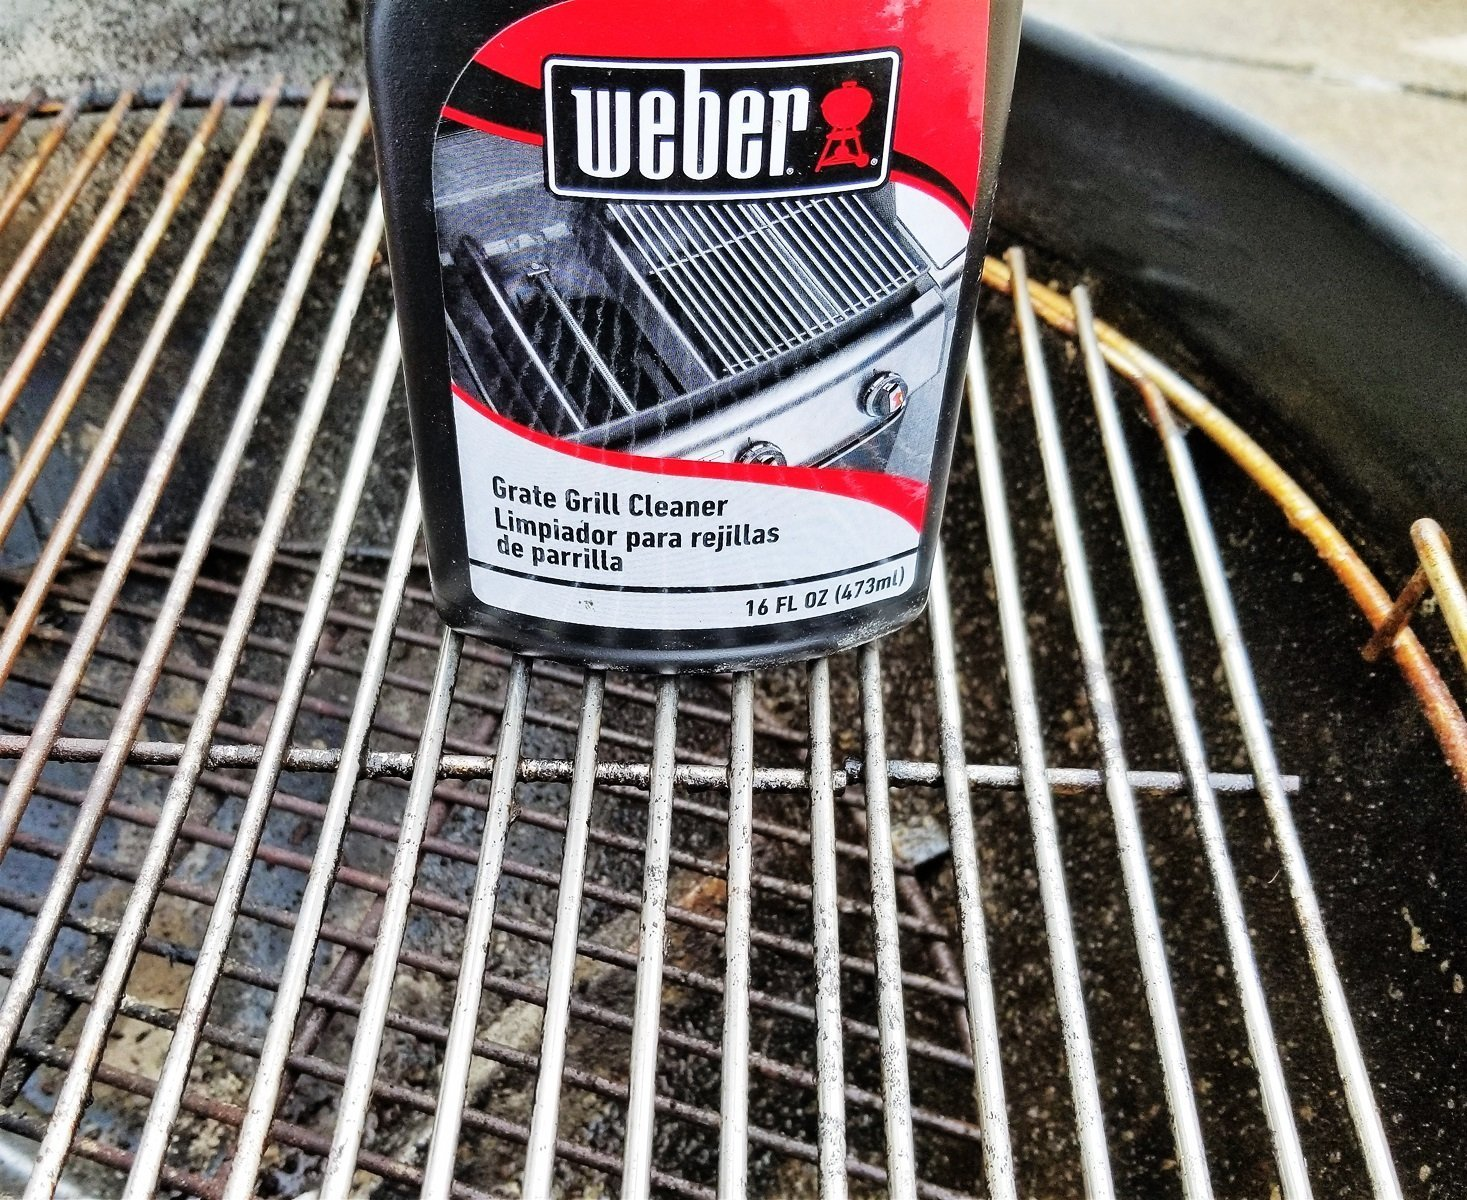 Weber grill grate cleaner review cover